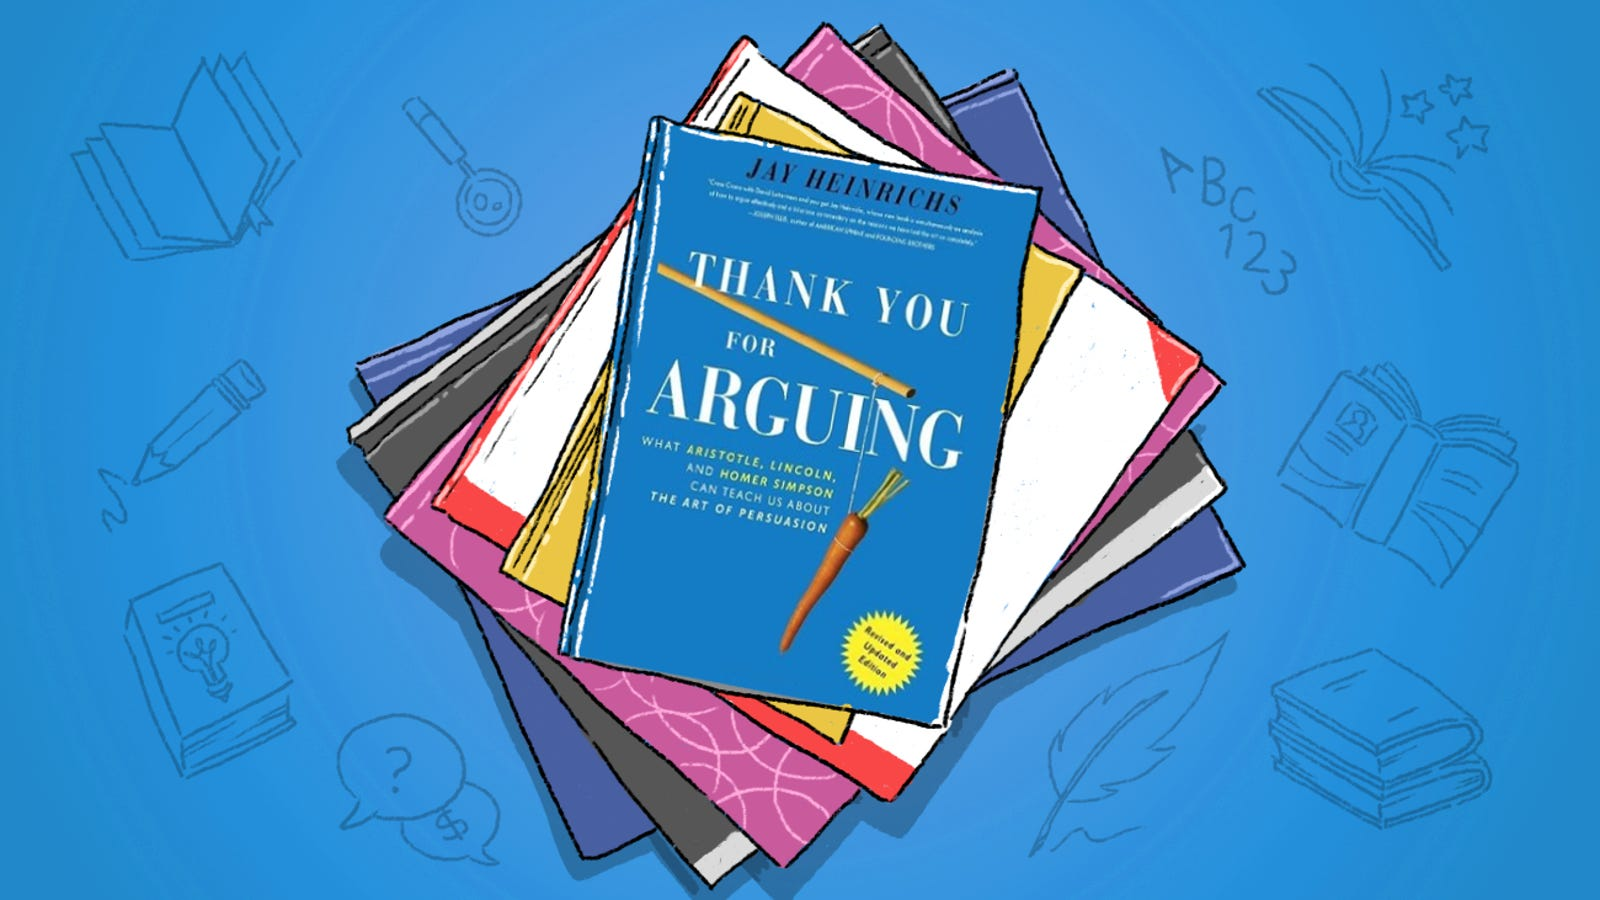 thank you for arguing 2013